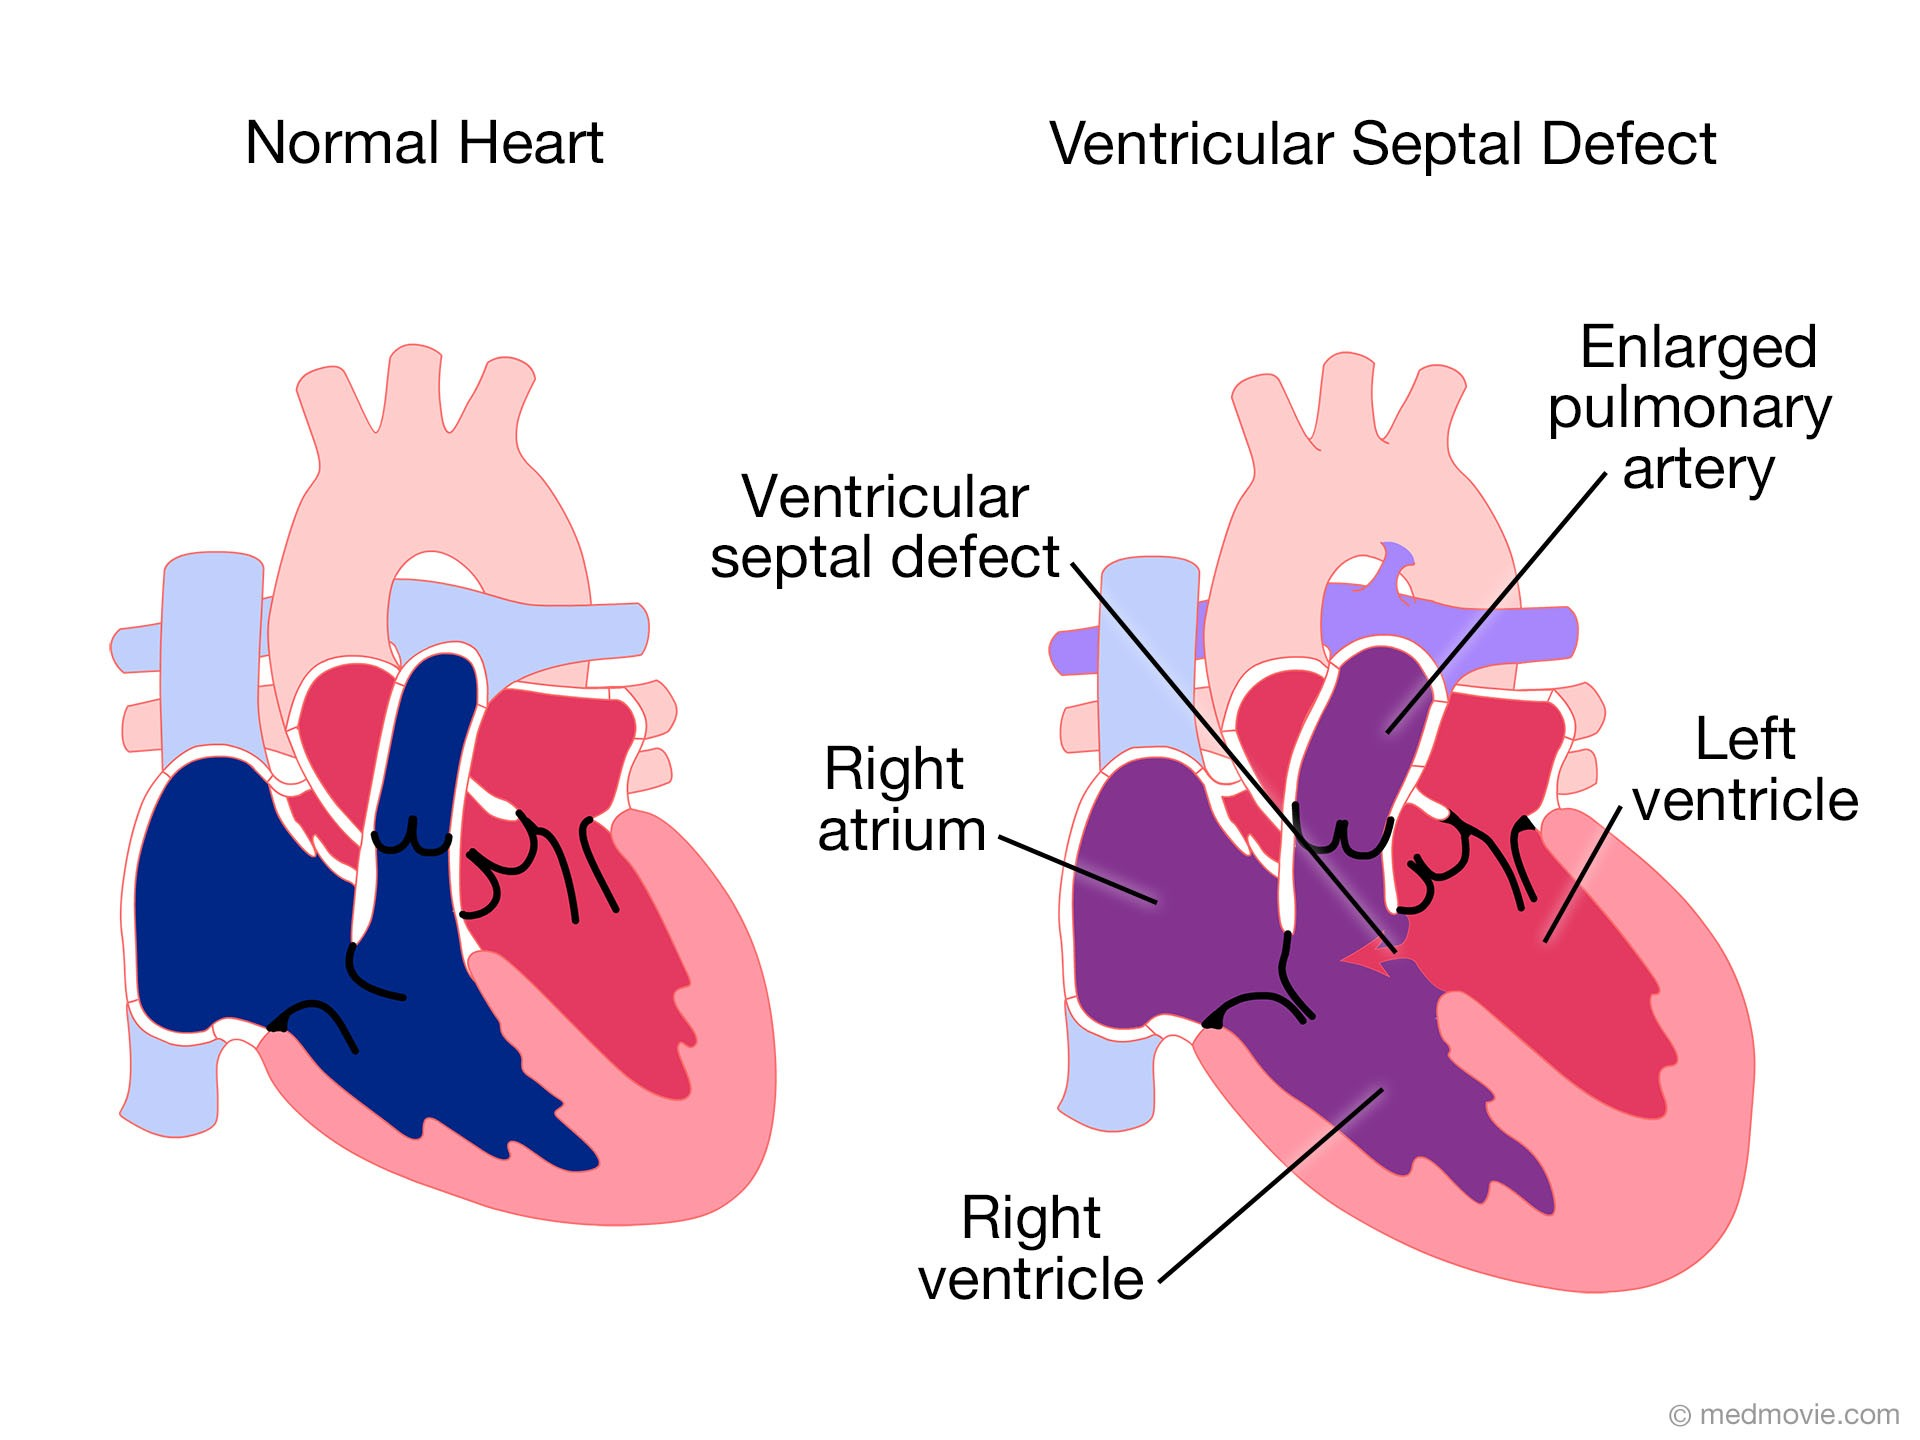 Illustration of a heart with a ventricular septal defect compared with a normal heart.